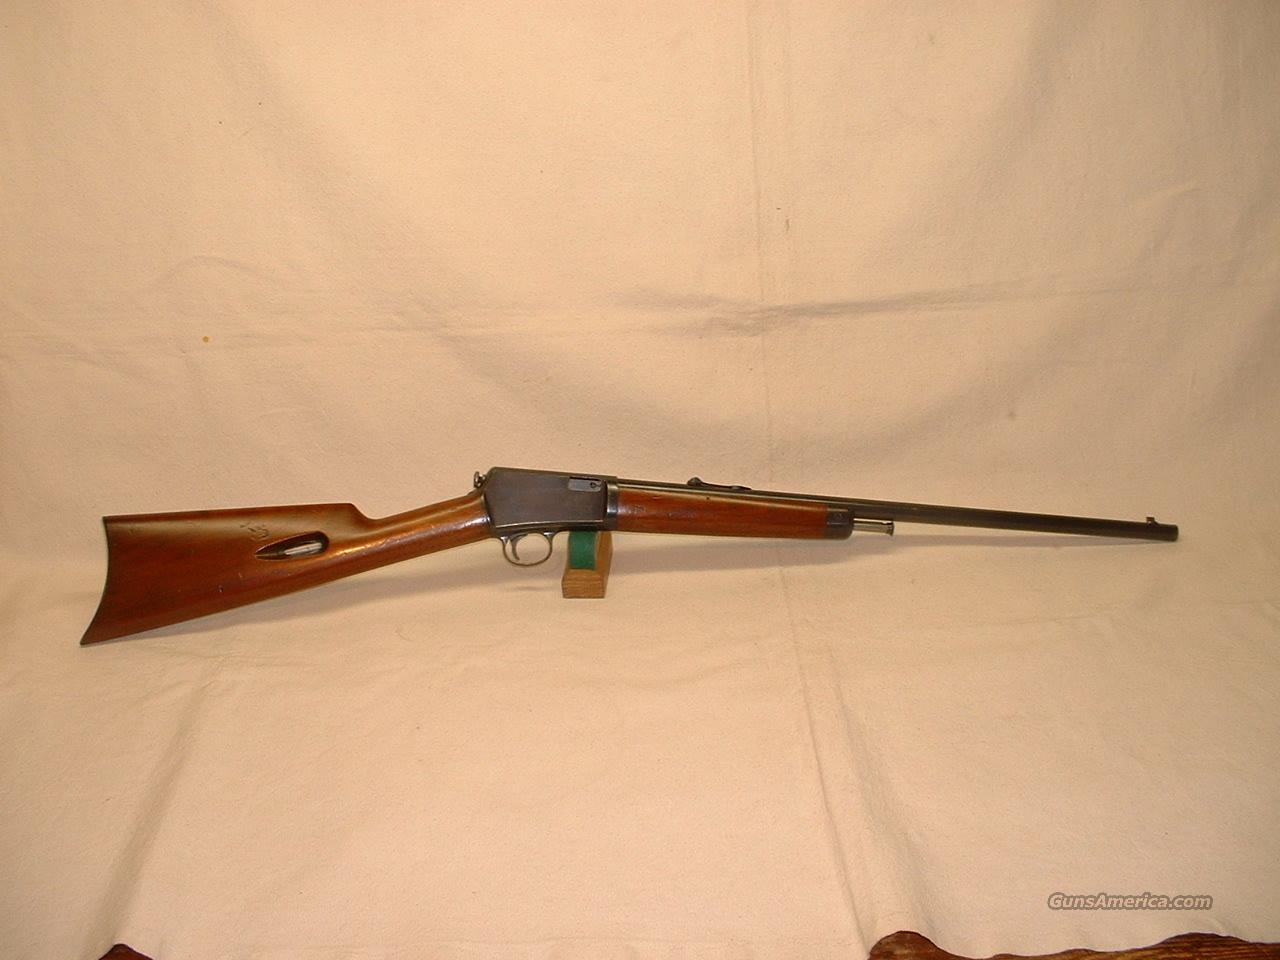 WINCHESTER MODEL 1903 - CAL. .22 AUTOMATIC  Guns > Rifles > Winchester Rifles - Modern Bolt/Auto/Single > Autoloaders